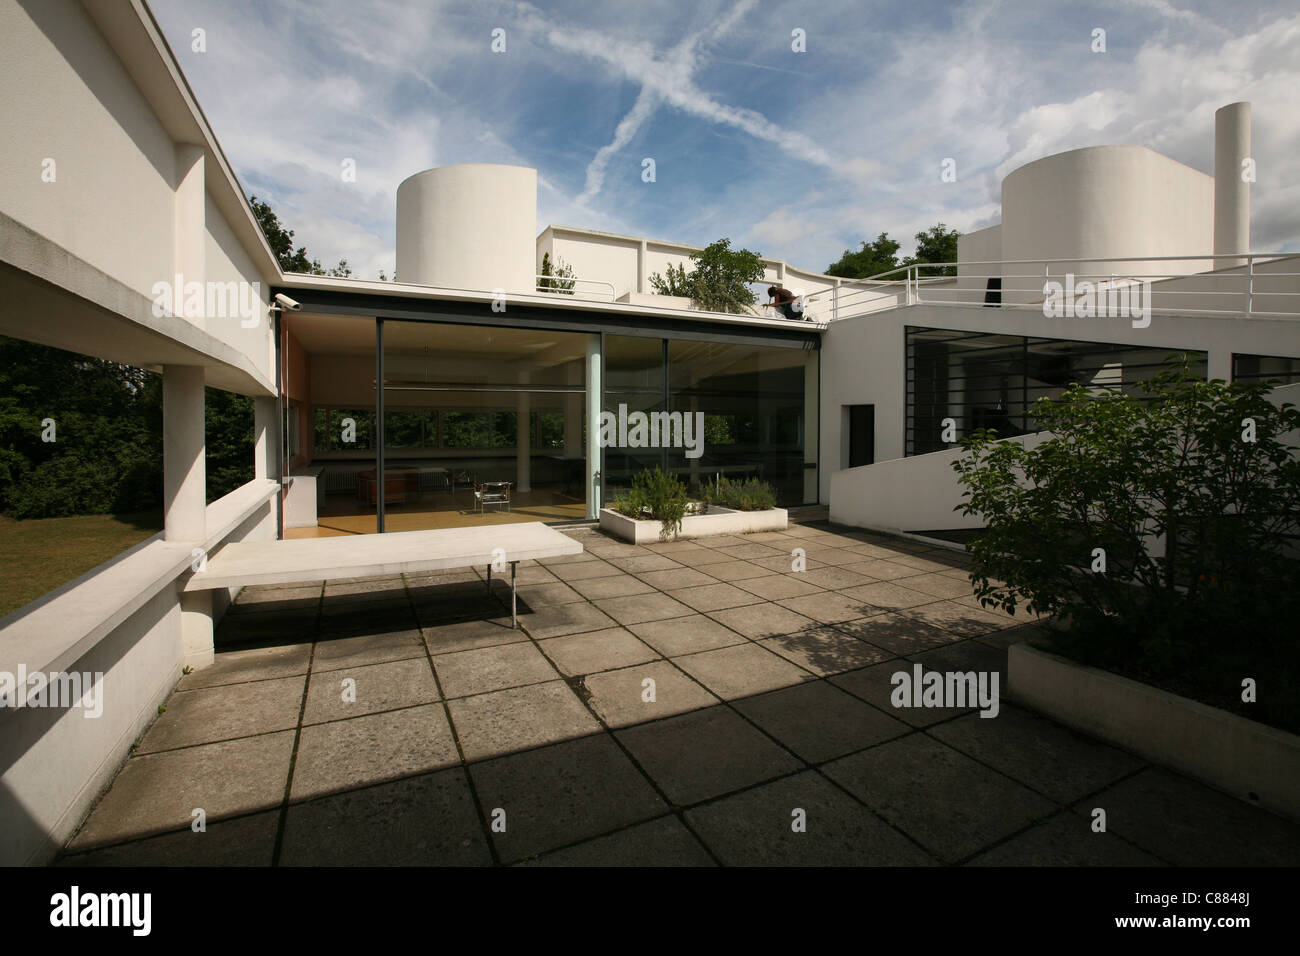 Roof terrace of the Villa Savoye by architect Le Corbusier